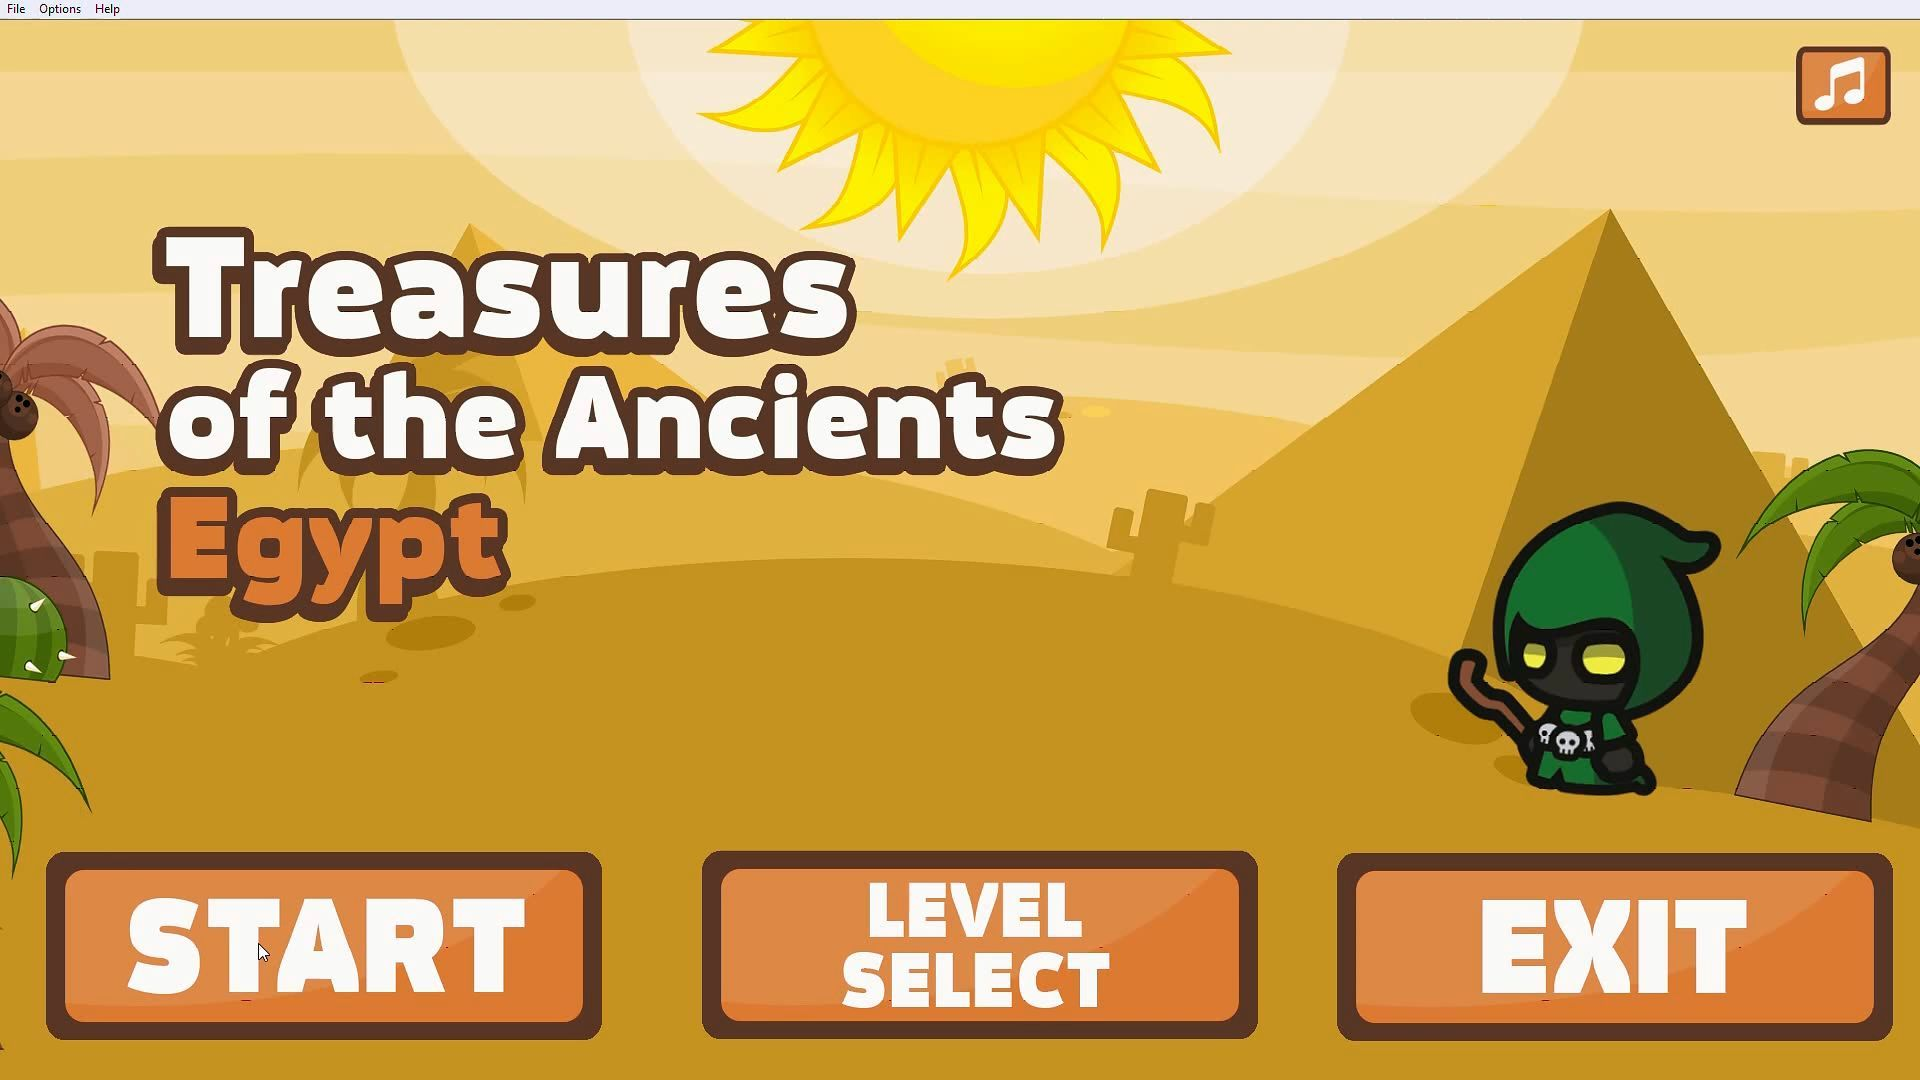 Скриншот из игры Treasures of the Ancients: Egypt